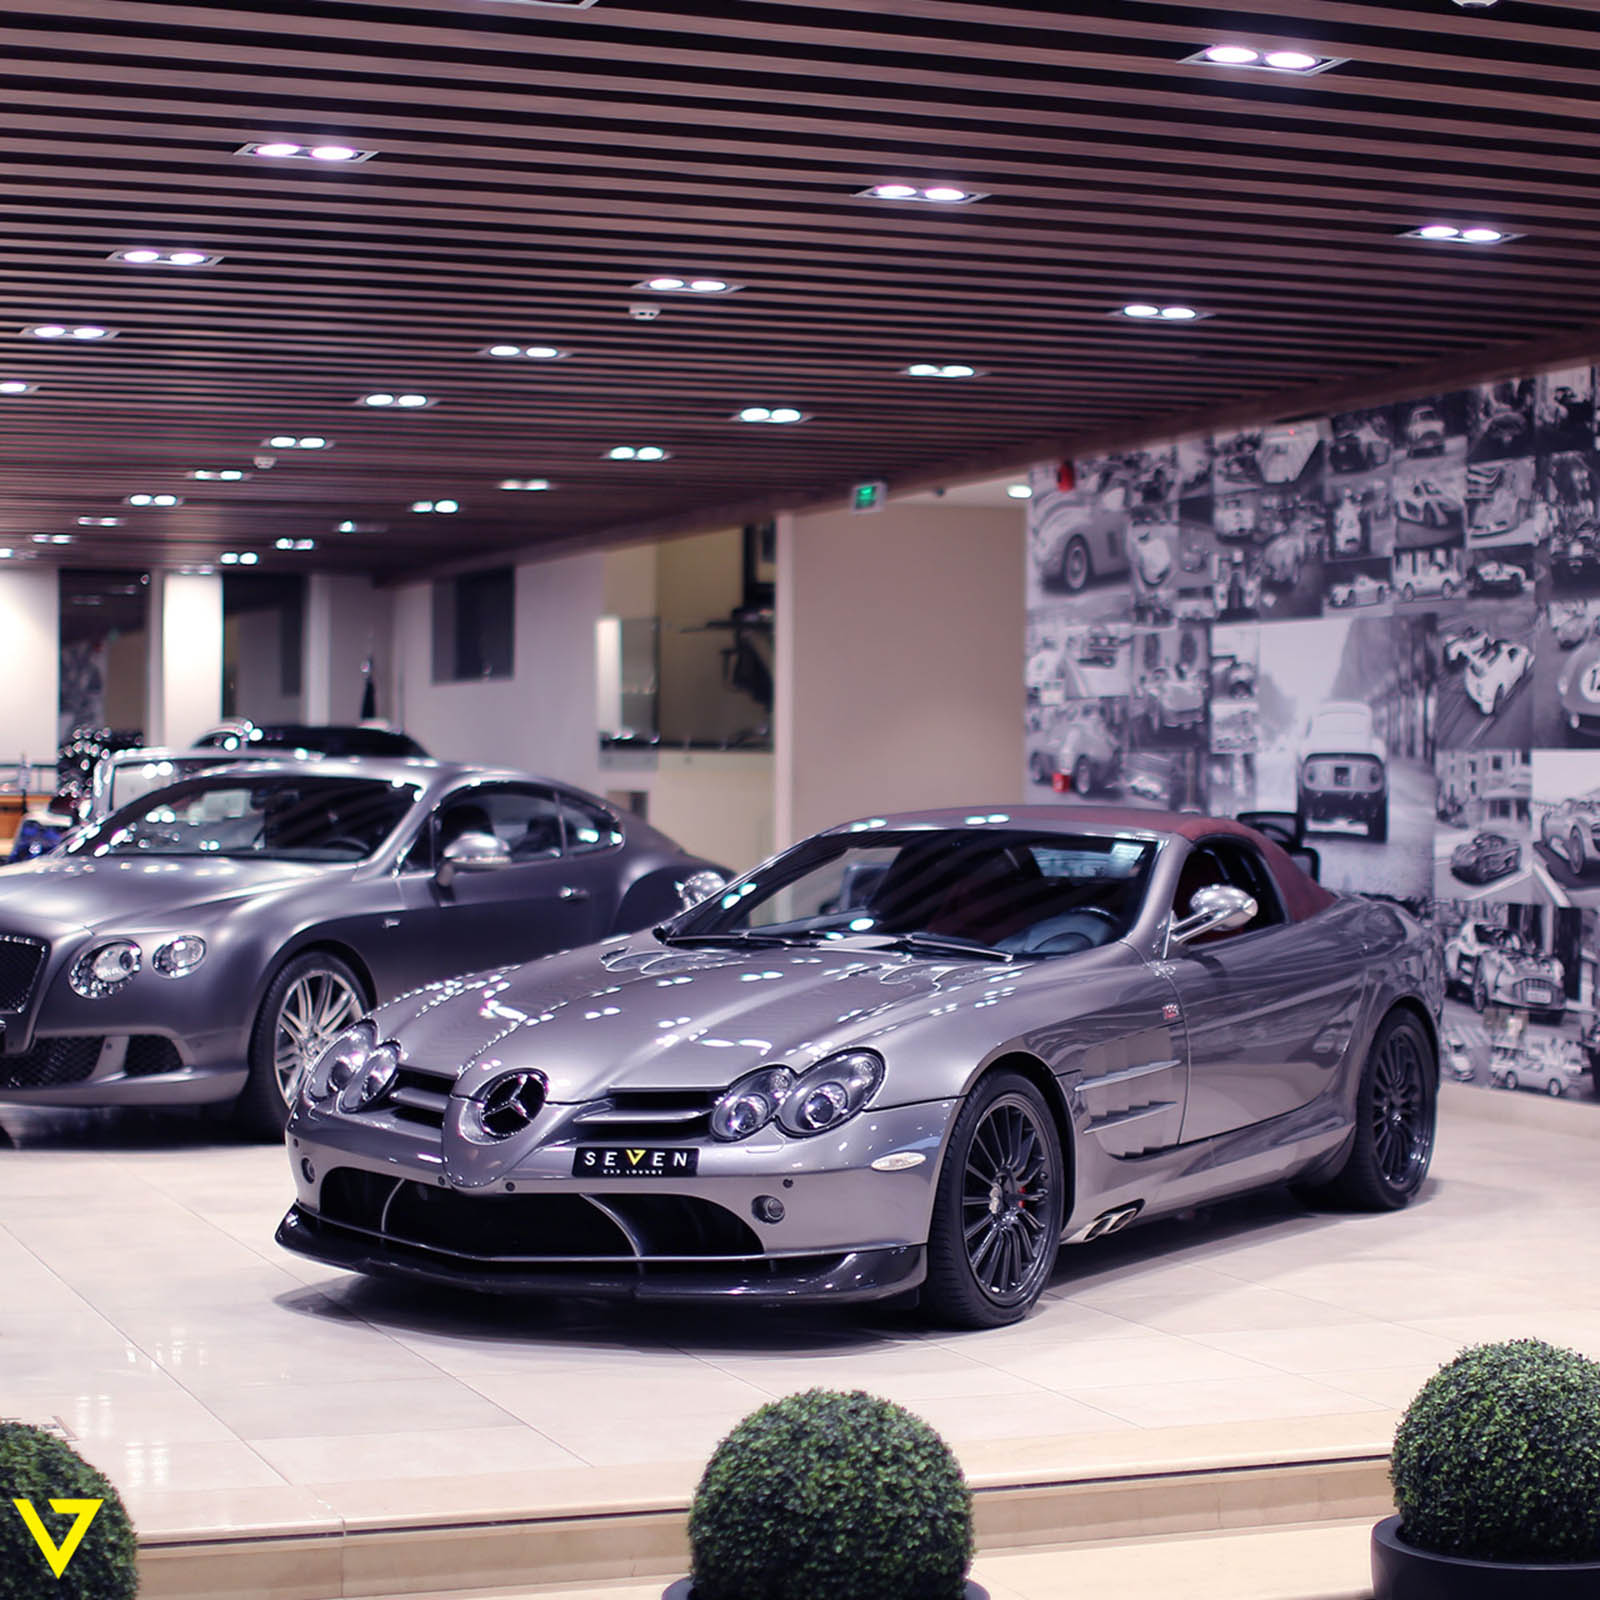 rare mercedes benz slr mclaren roadster 722 s could be yours for. Cars Review. Best American Auto & Cars Review